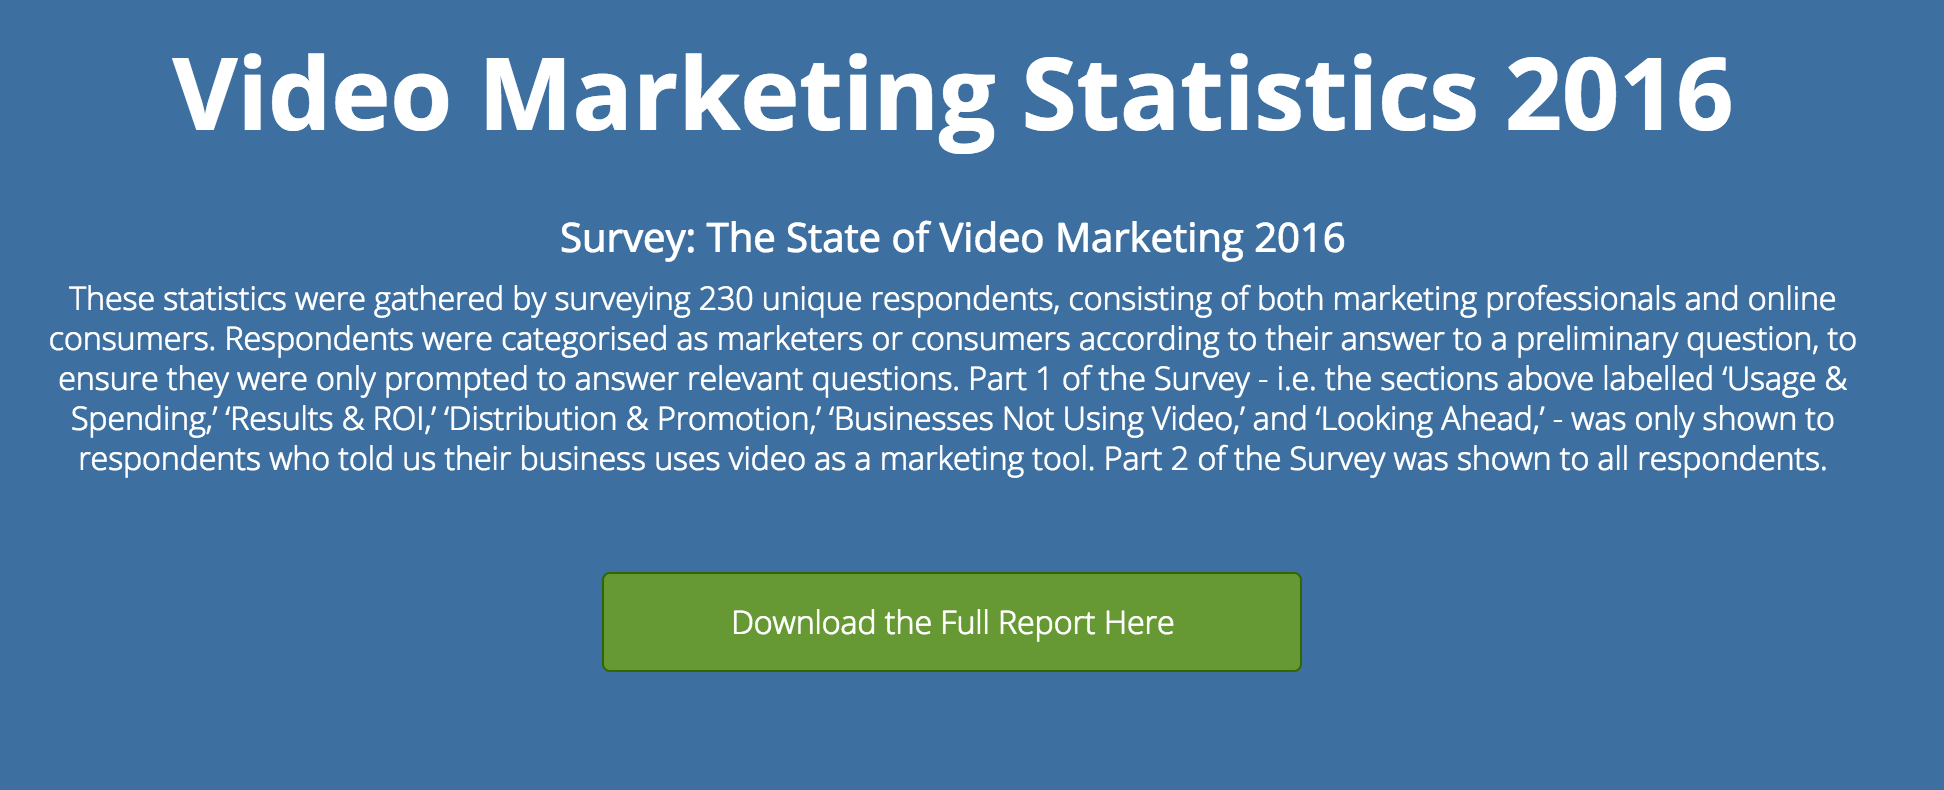 video marketing statistics 2016